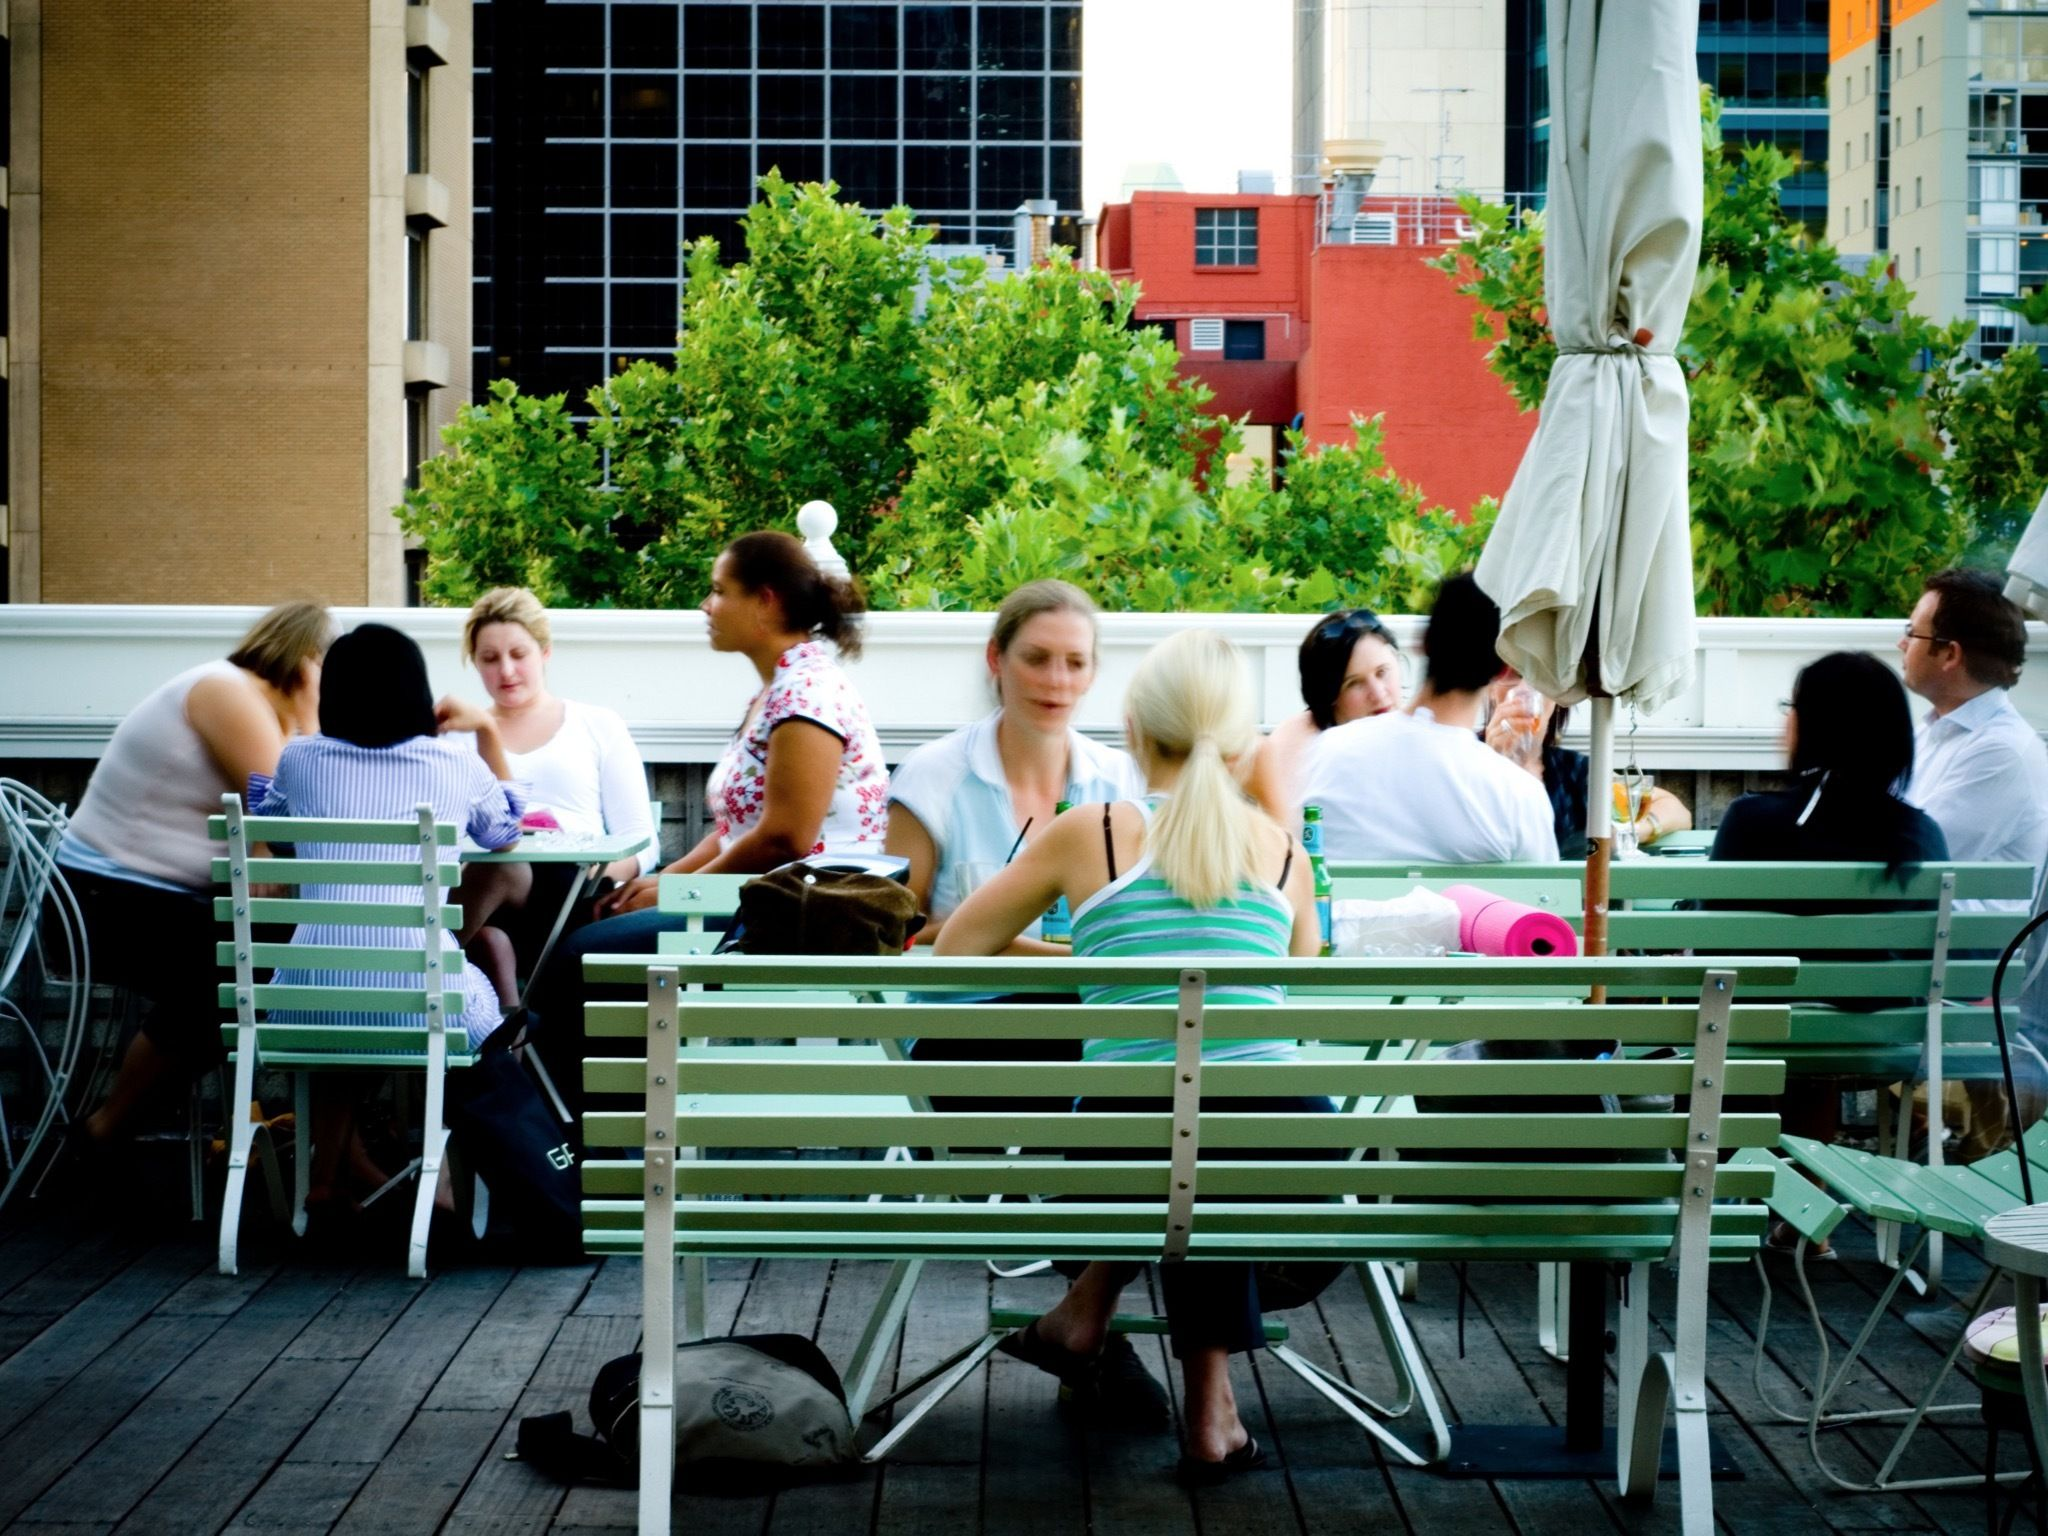 The best rooftop bars in Melbourne | Best rooftop bars ...